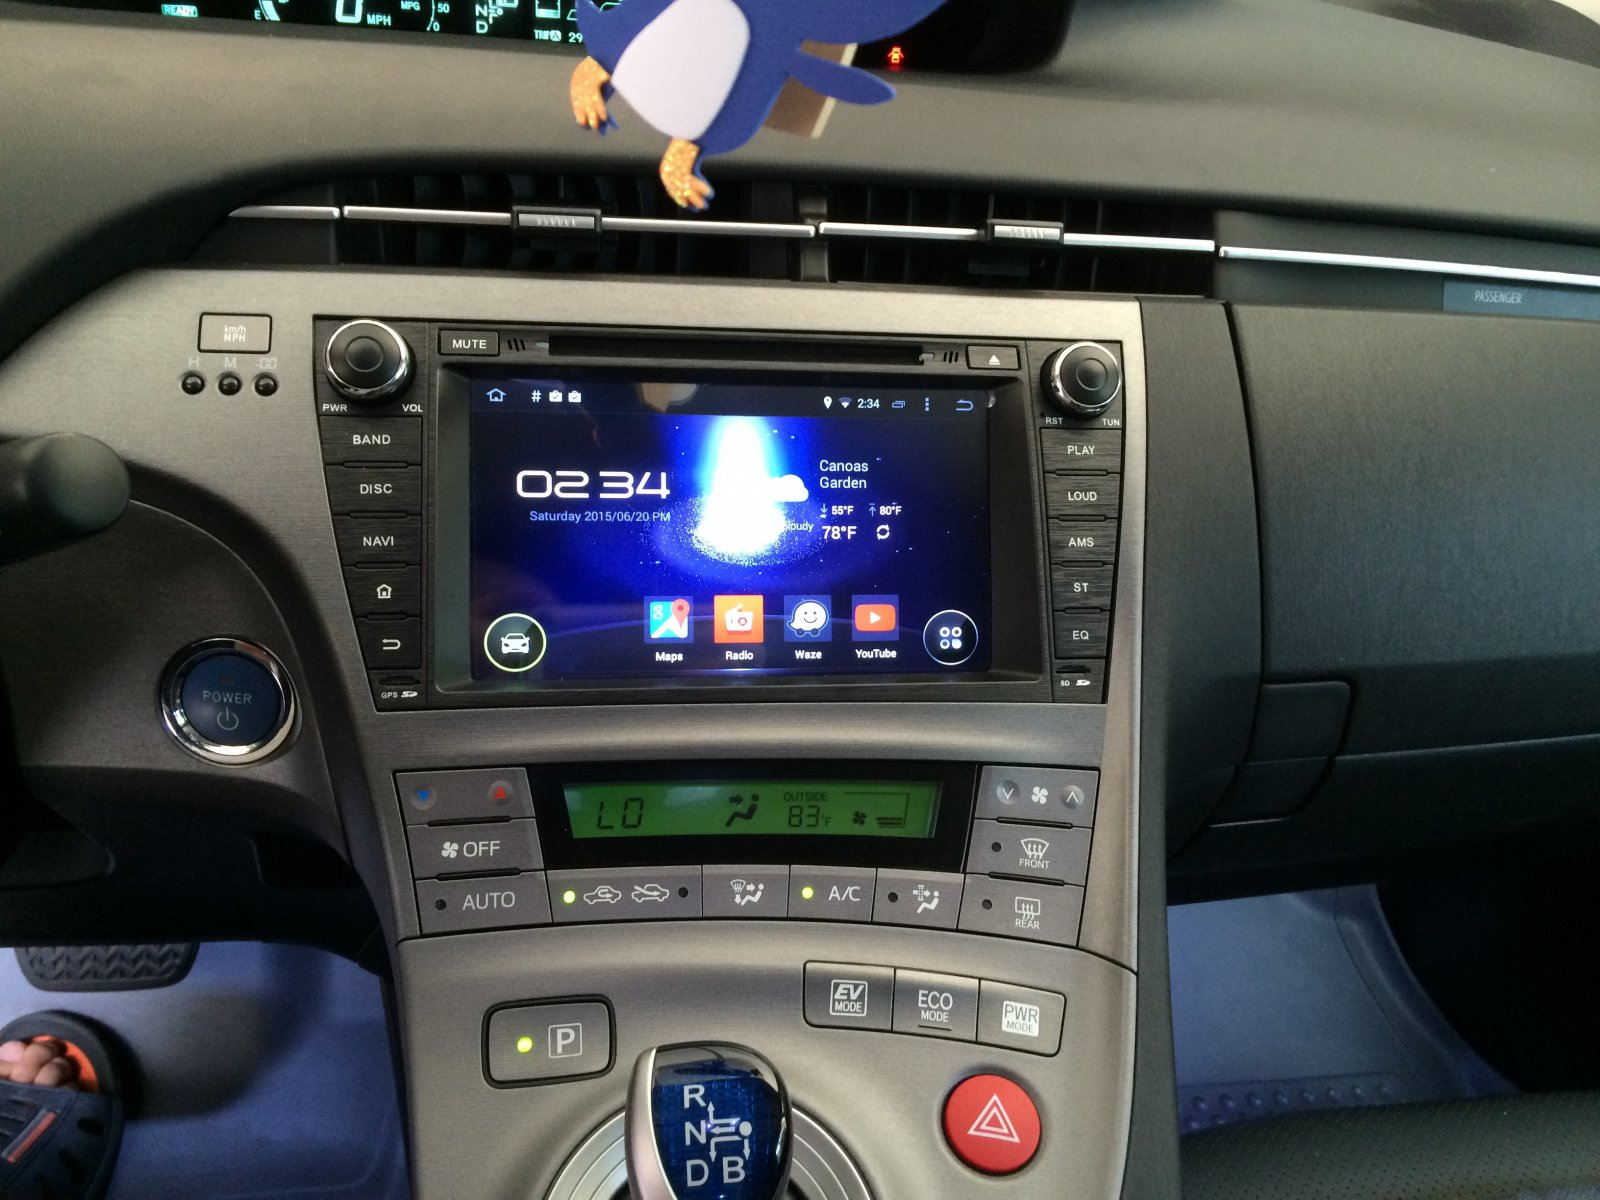 2015 Prius Three  Not Iii  Android 4 4 4 W  Oem Camera